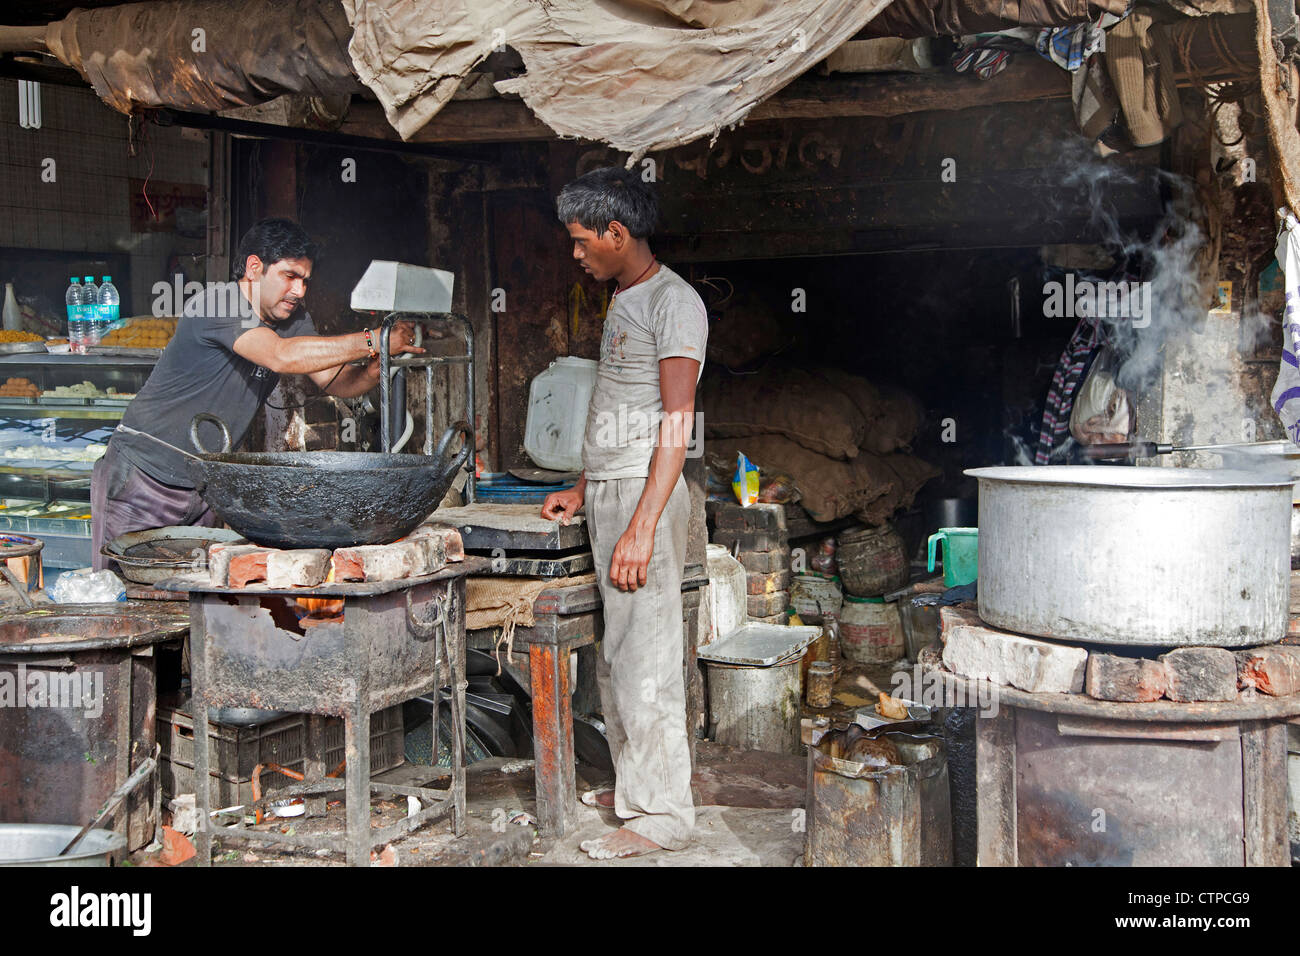 Primitive Kitchen Men Cooking Food In Dirty Unsanitary Primitive Kitchen In Mathura